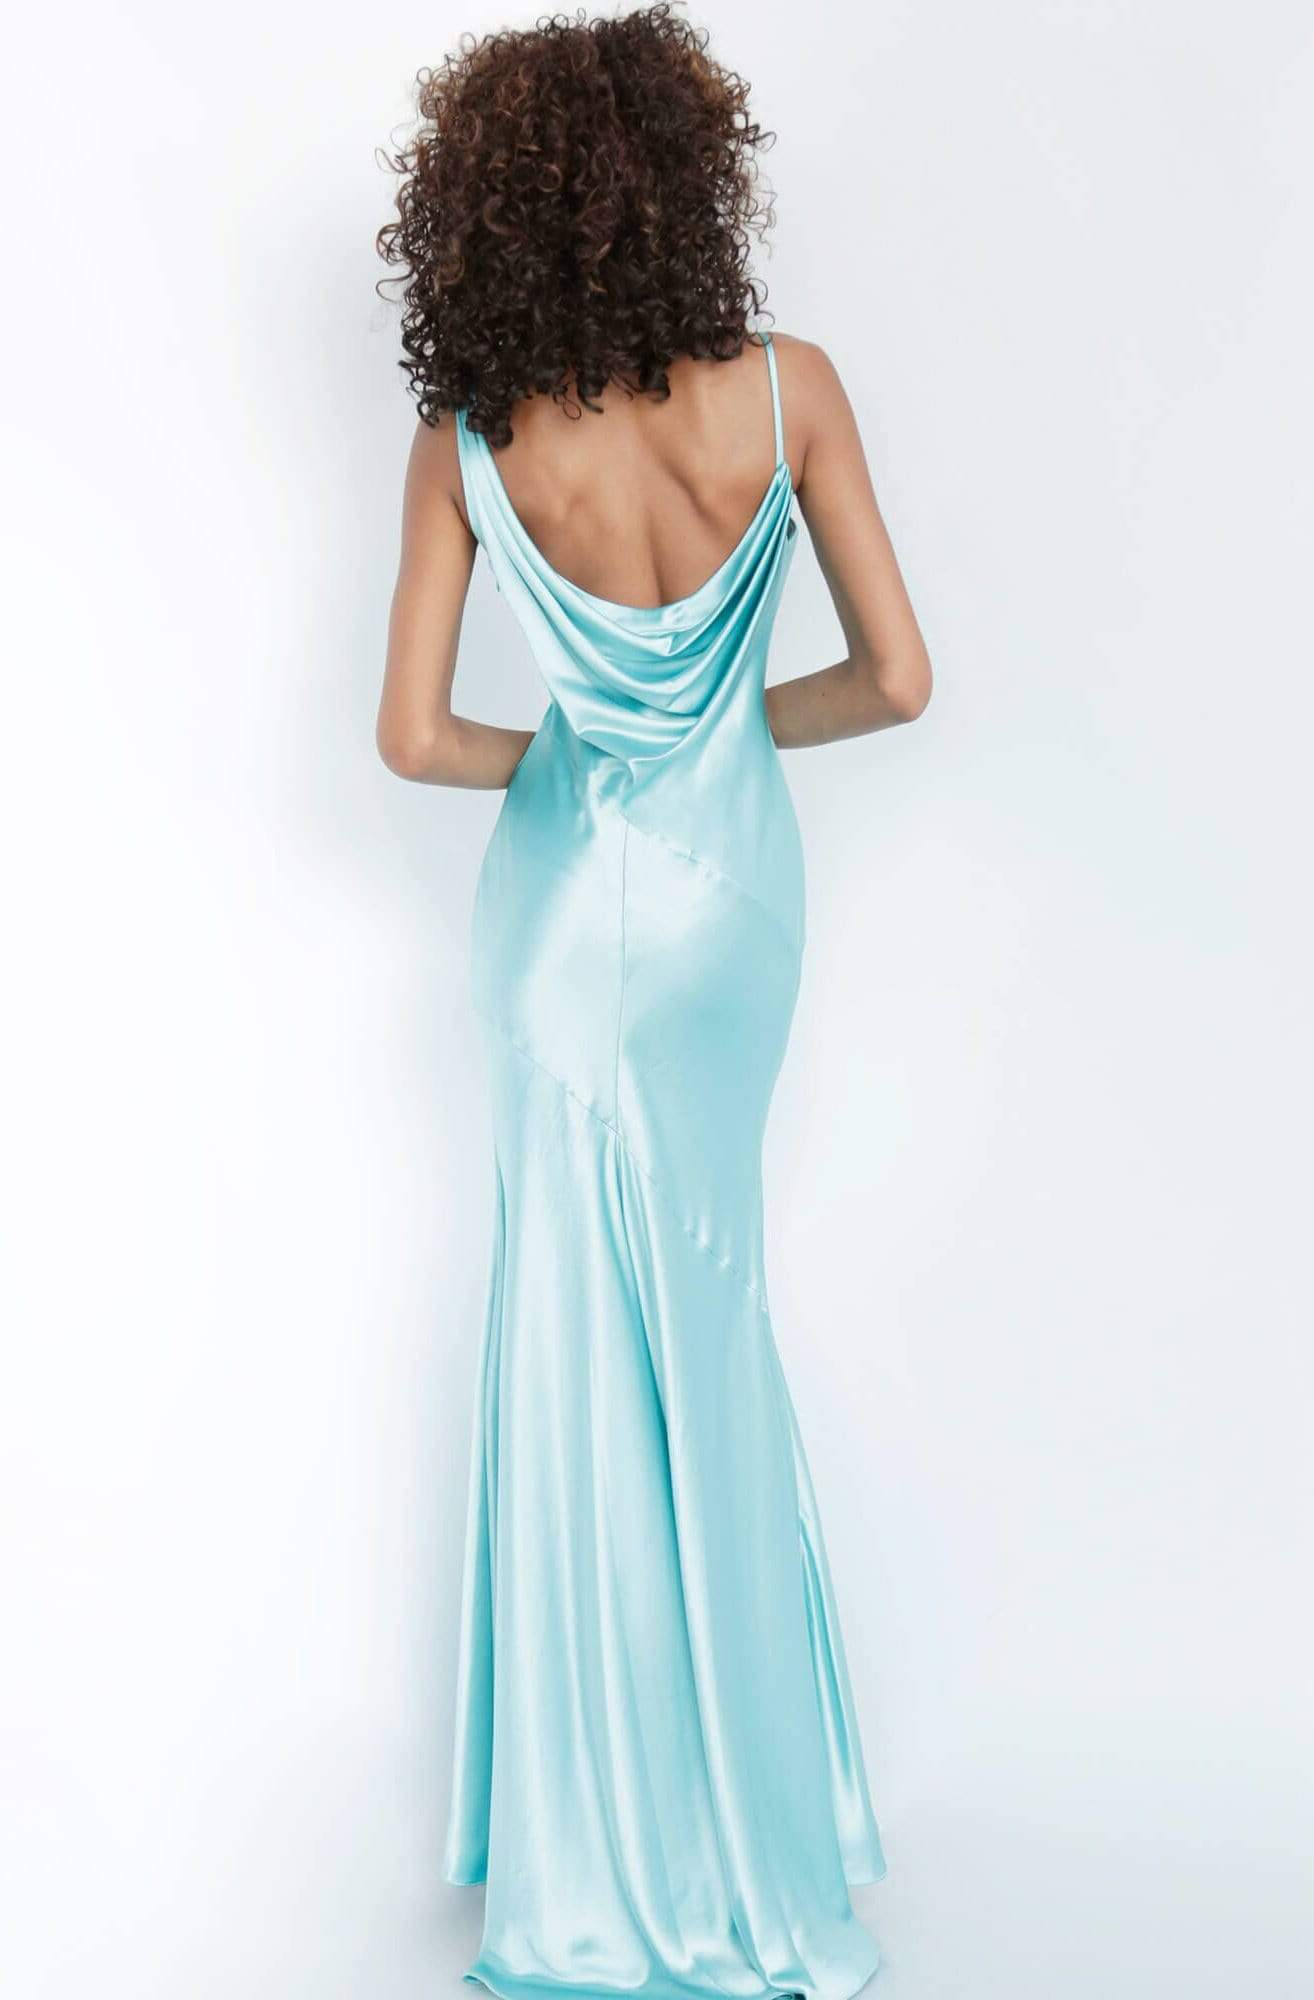 Jovani - 68506 Cowl Neck Satin Sheath Dress Evening Dresses